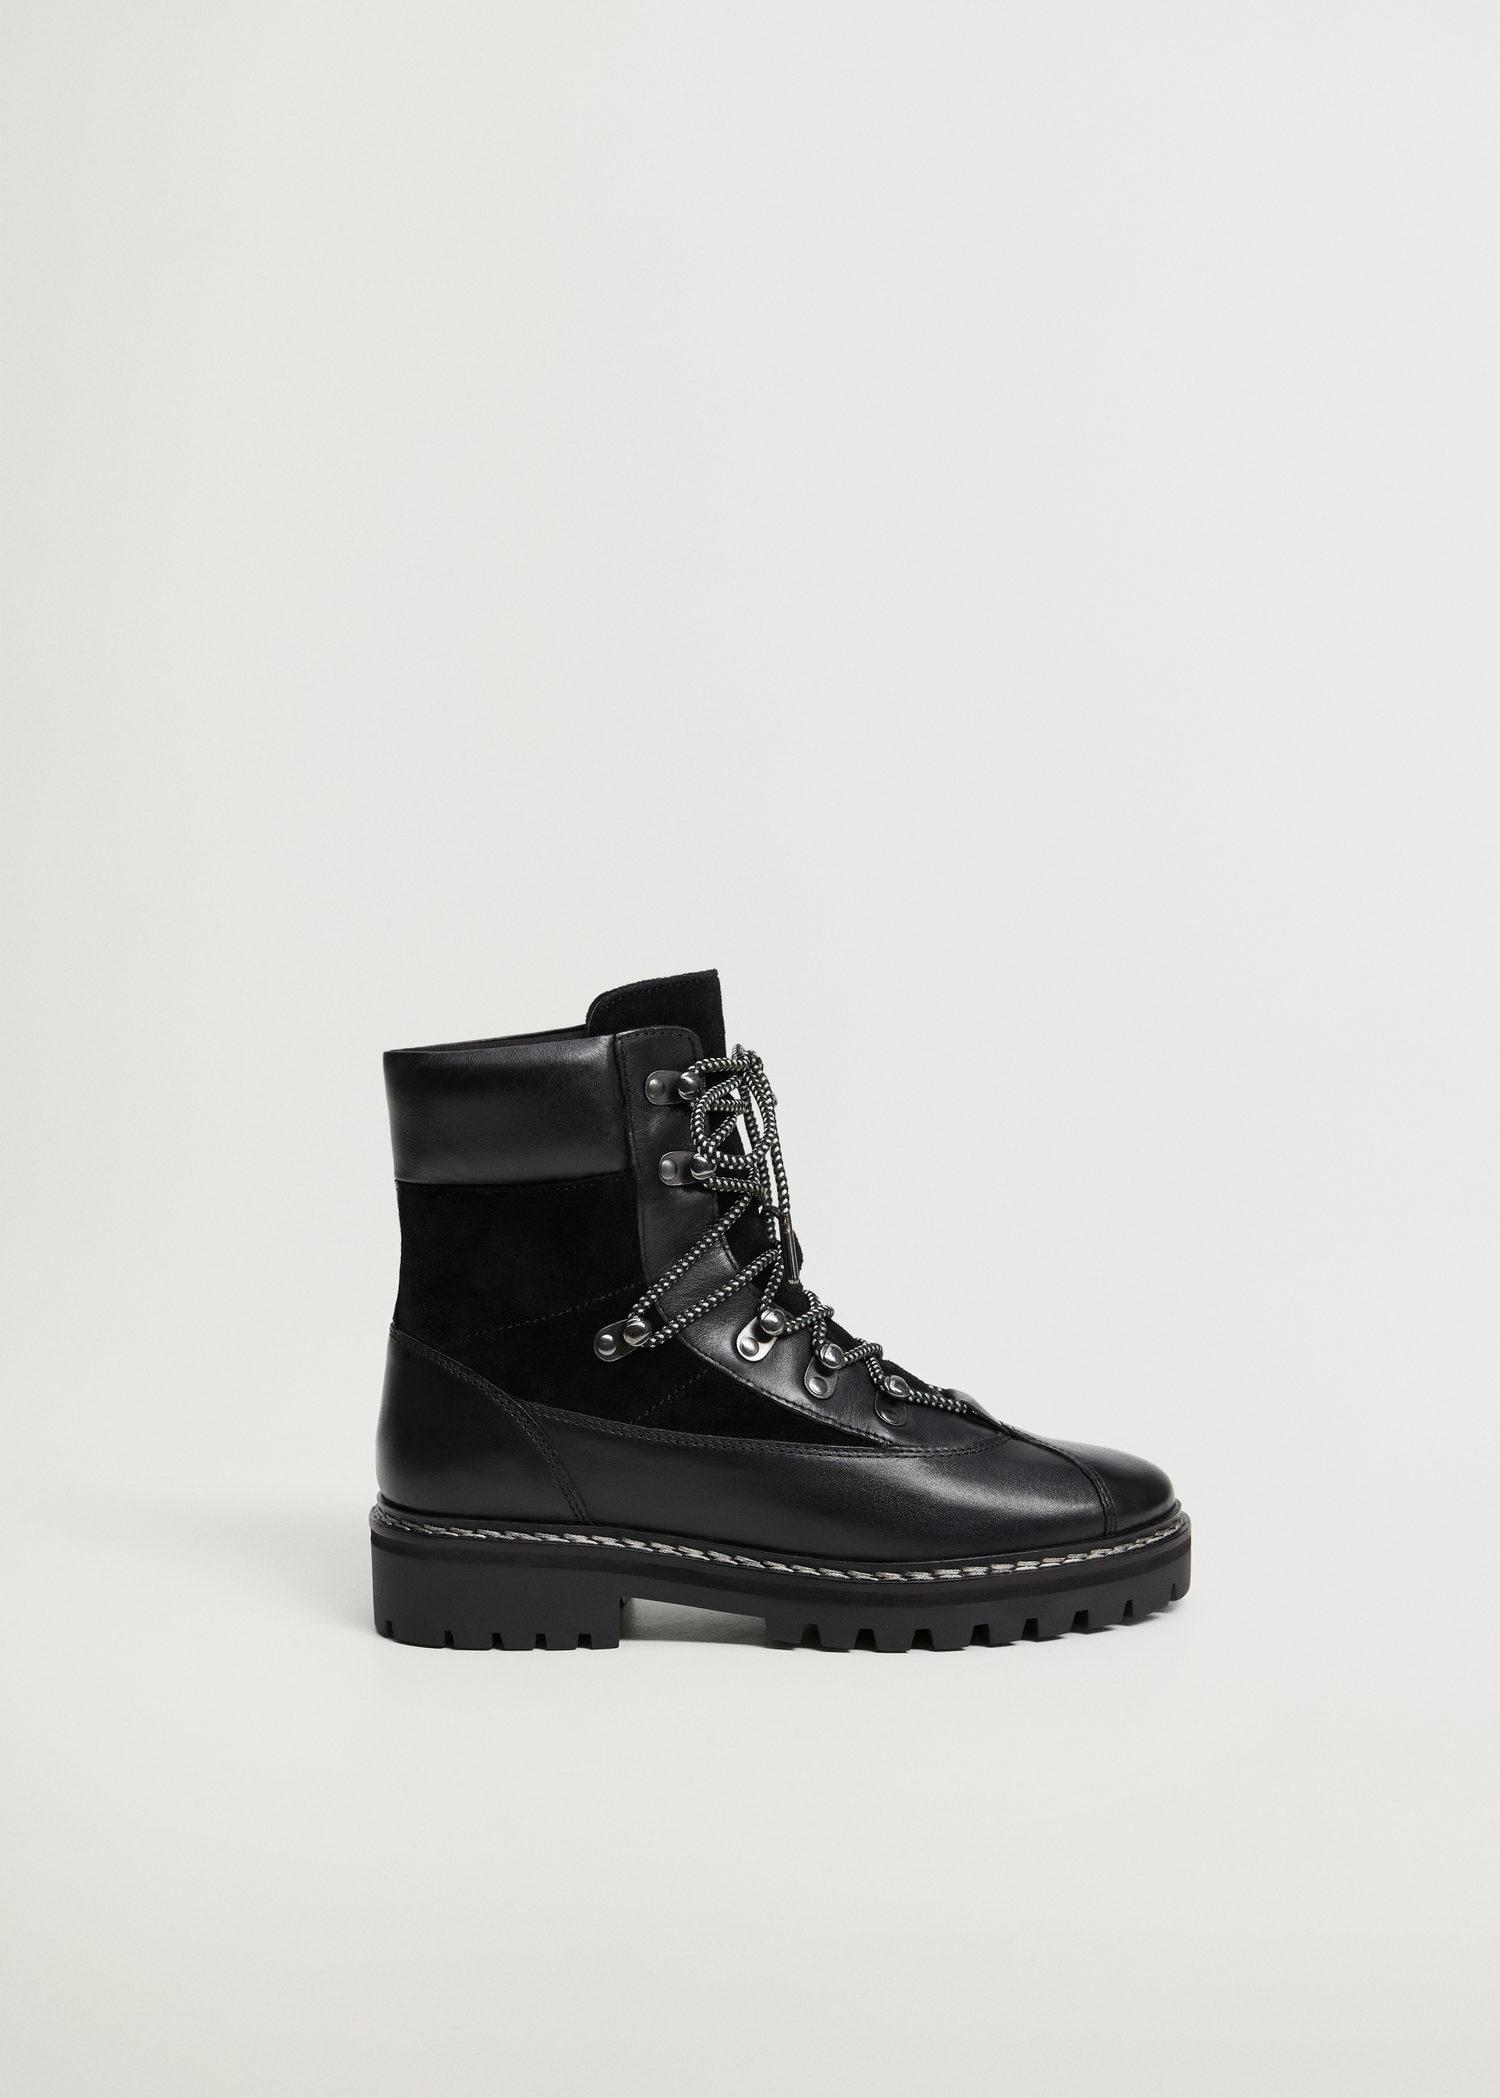 Contrast lace-up leather boots